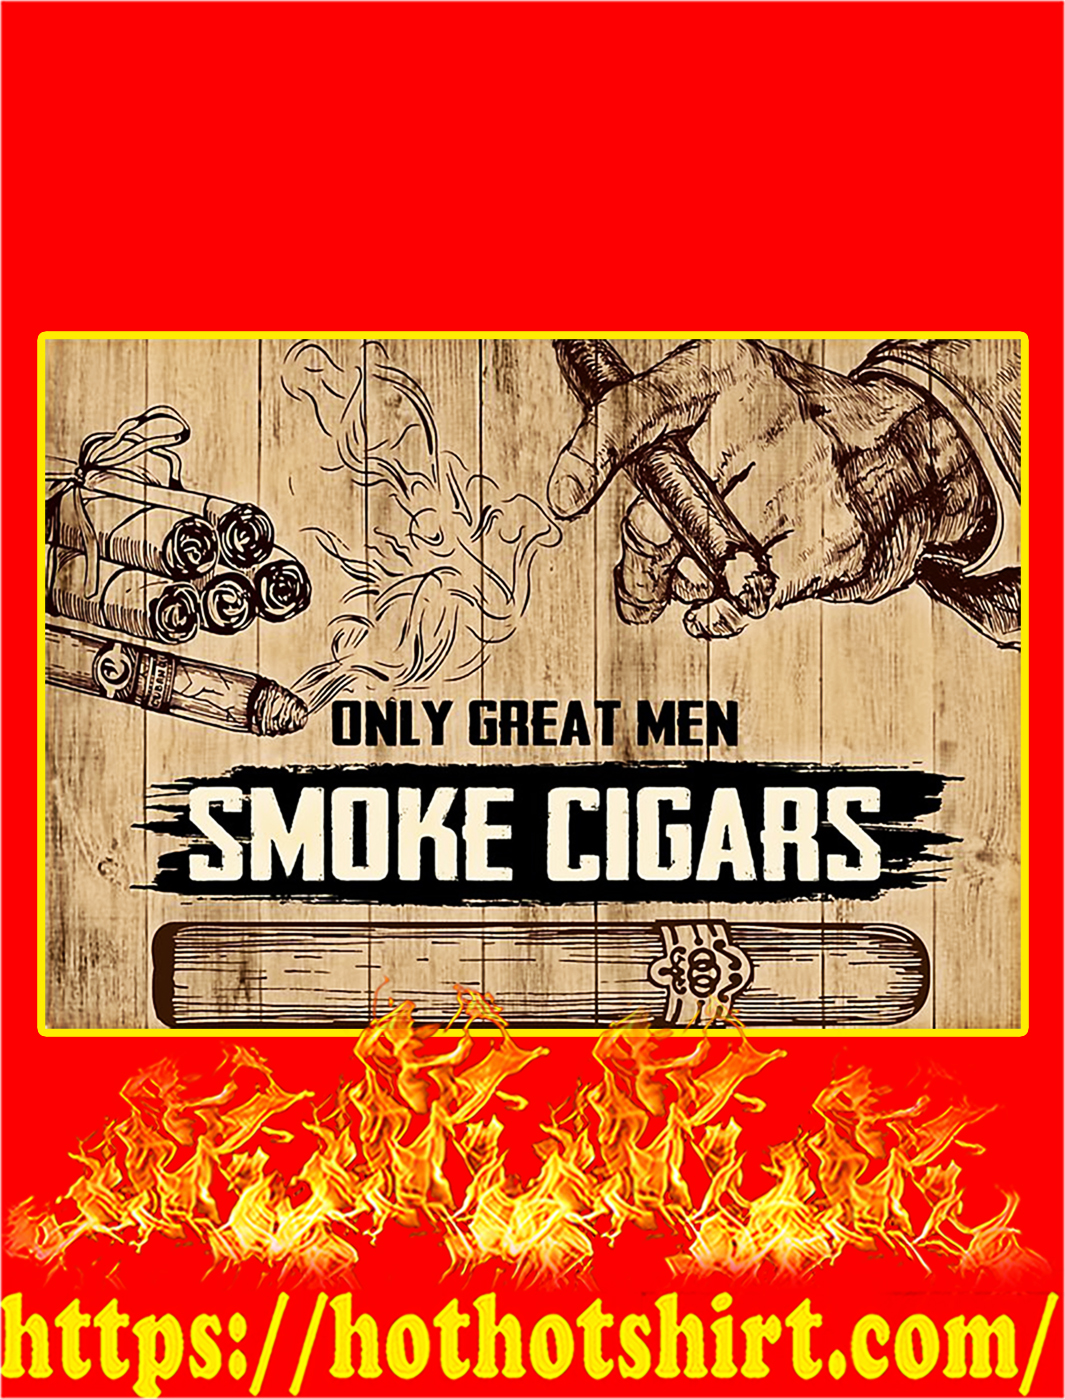 Only A Great Men Smoke Cigars Poster - A3